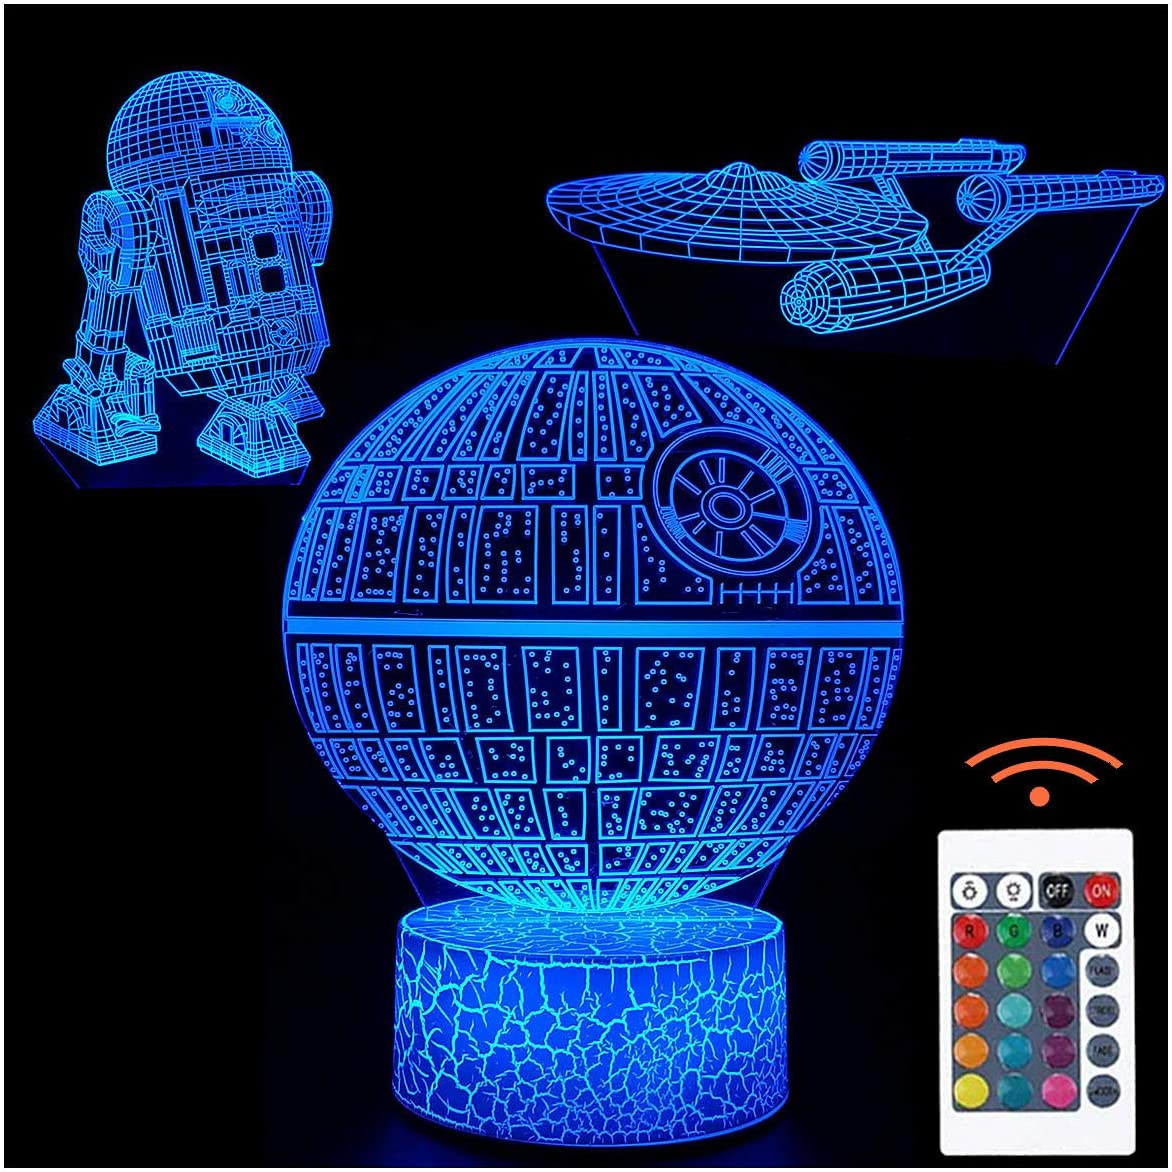 3D Illusion Night Light Visual Creative LED Desk Lamp Touch Control 7 Color Change for Home Decorations or Kids Holiday Gifts (3 Pattern)